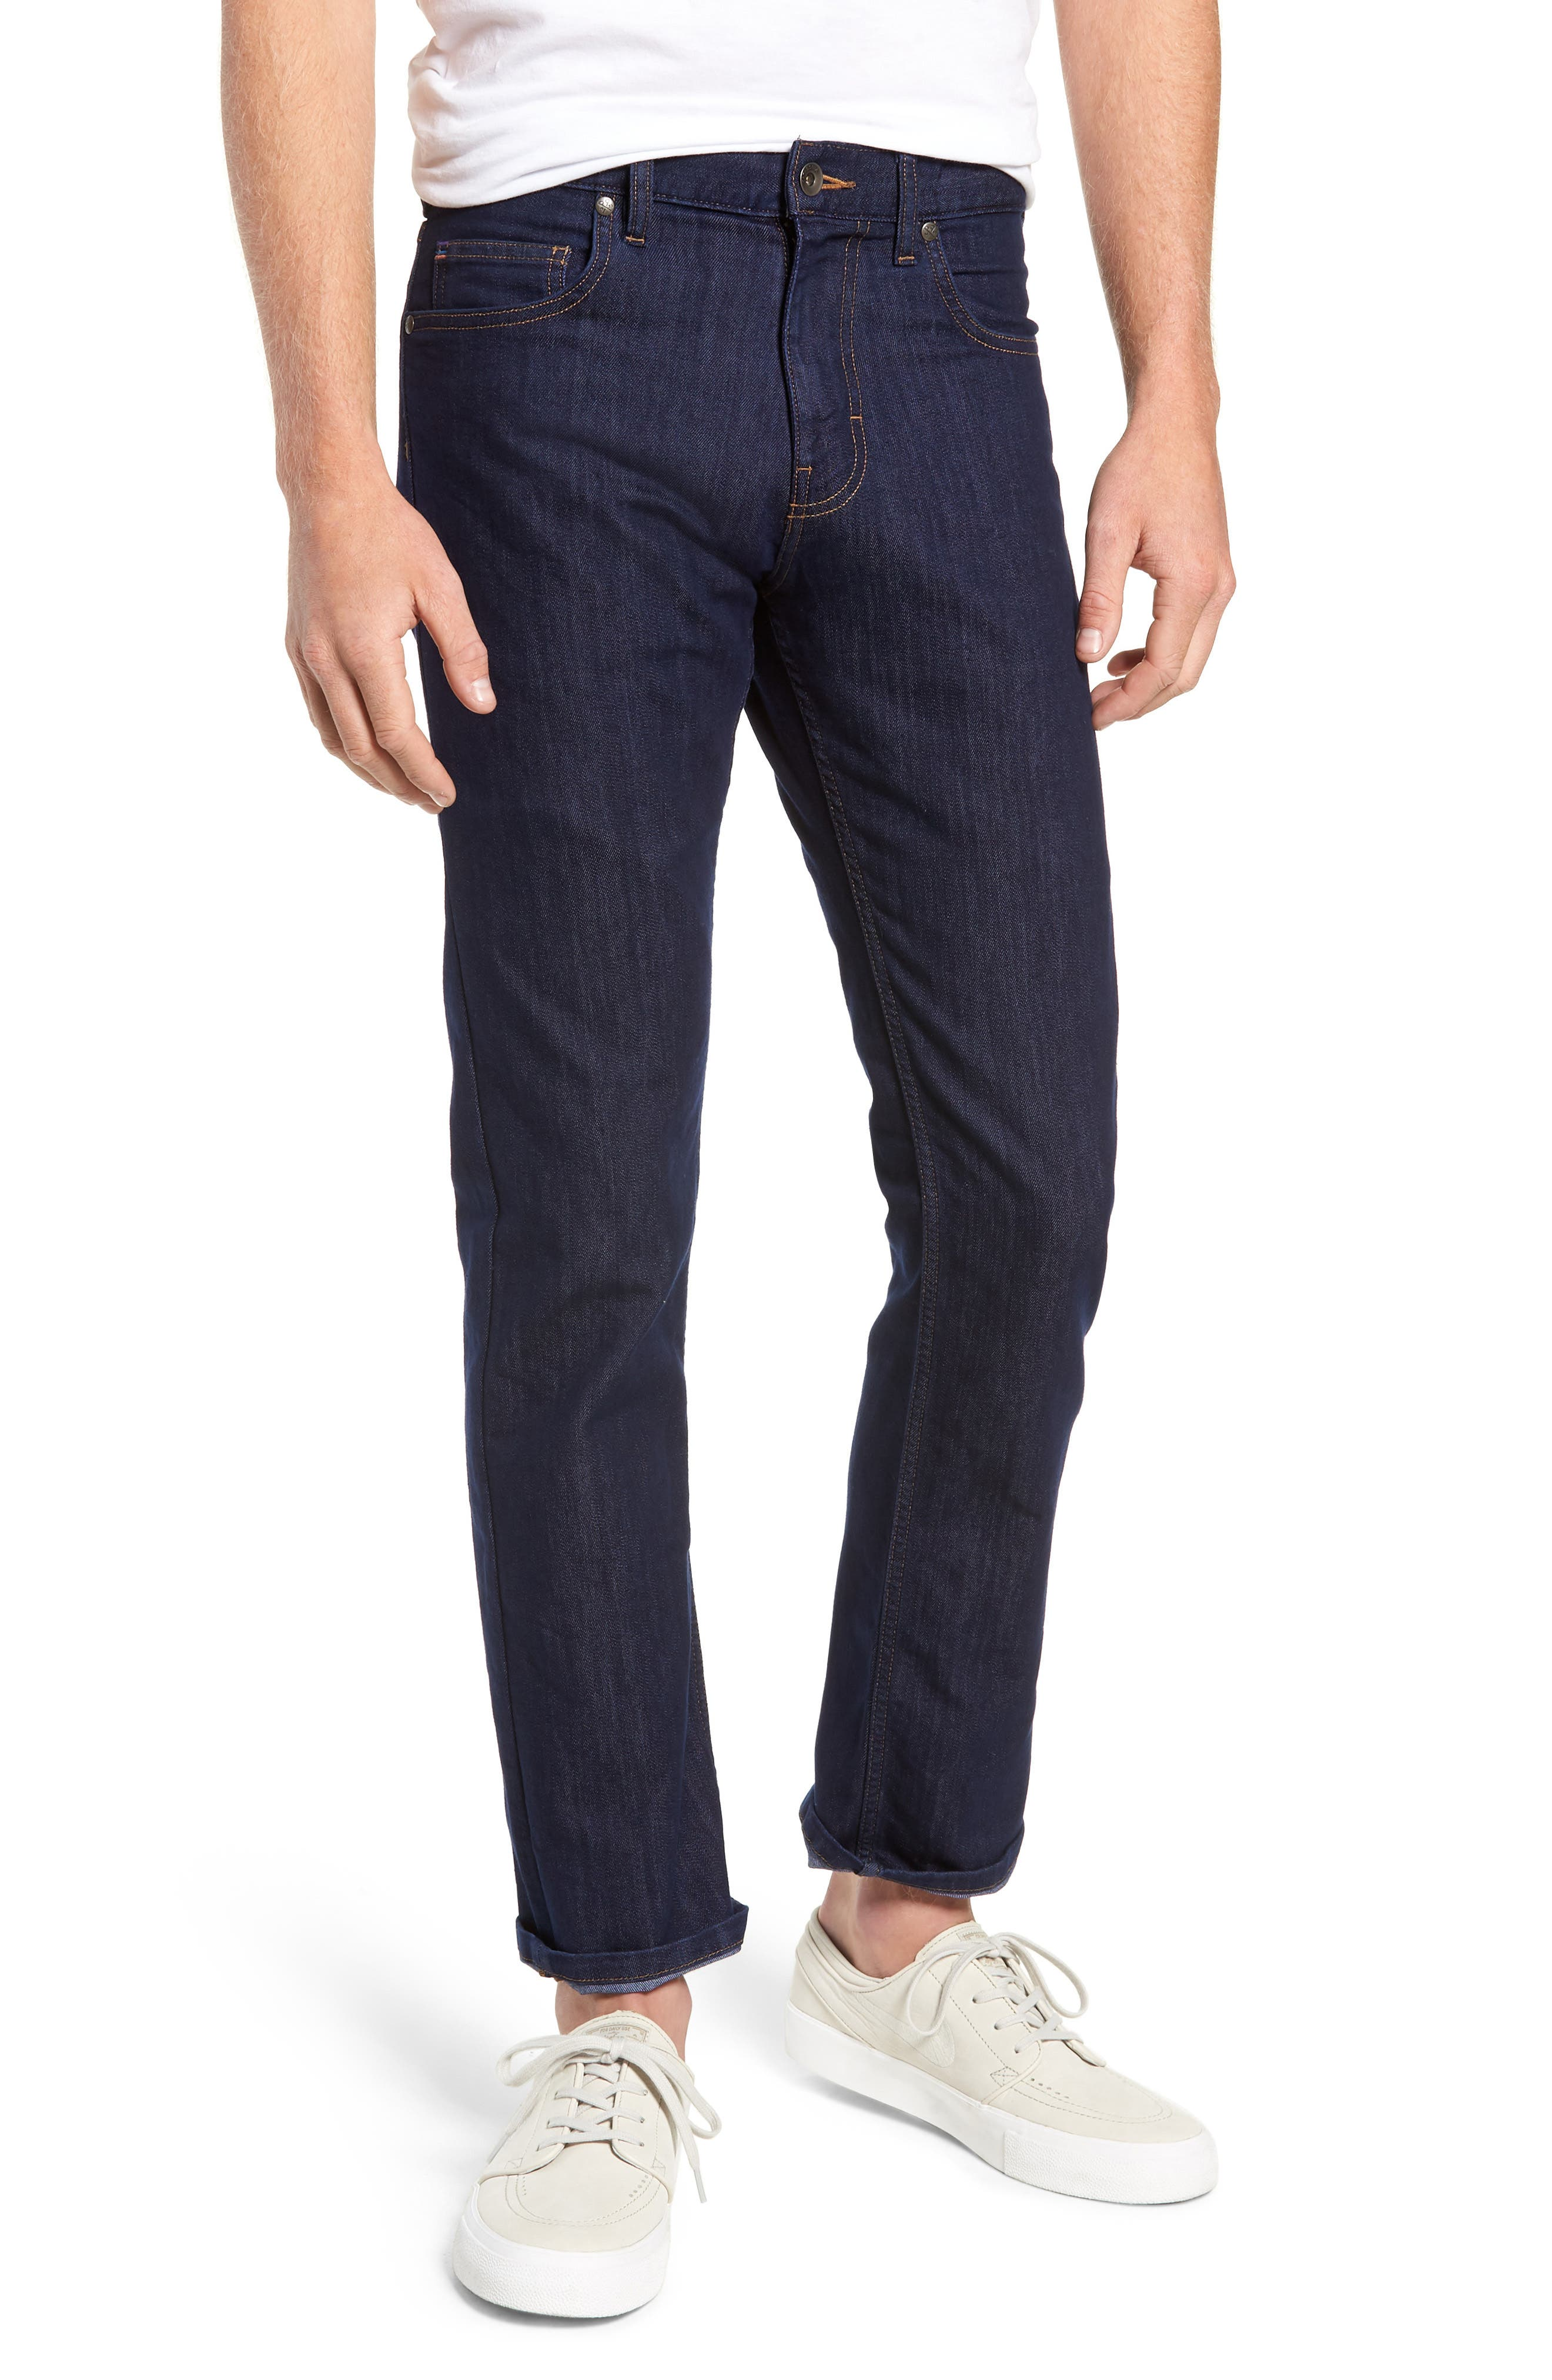 Straight Leg Performance Jeans,                         Main,                         color, DARK DENIM